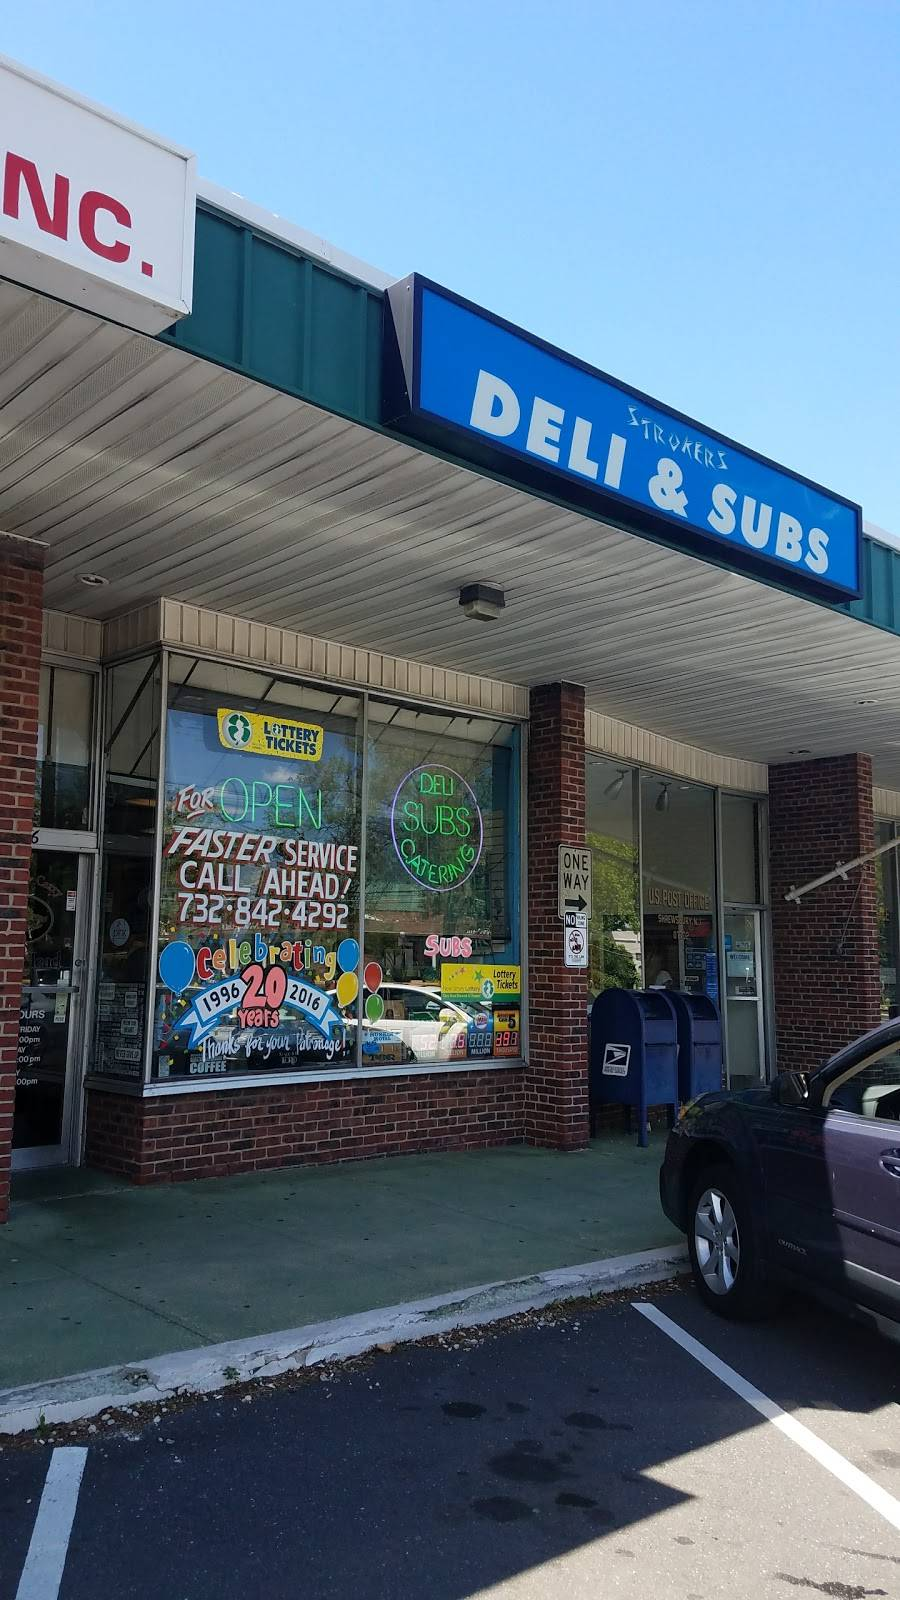 Strokers Deli & Subs   meal delivery   566 Broad St, Shrewsbury, NJ 07702, USA   7328424292 OR +1 732-842-4292